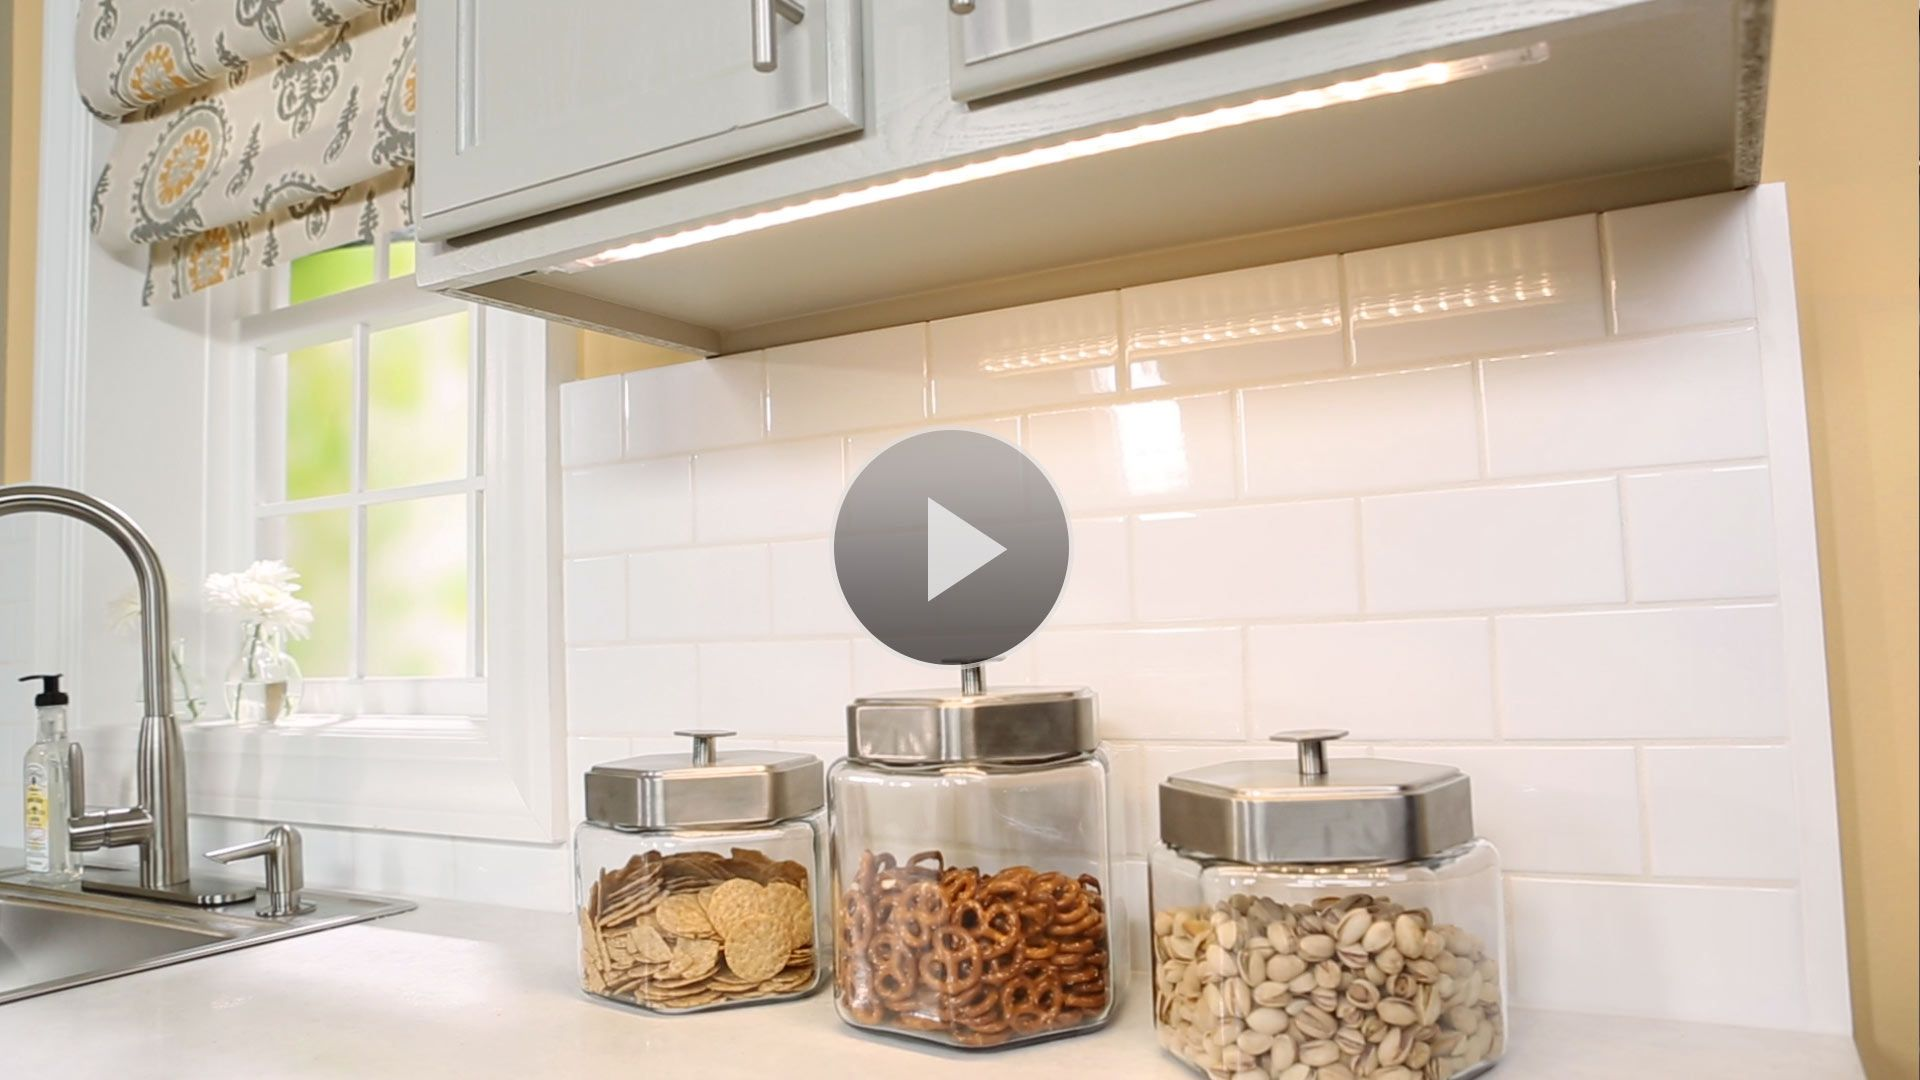 easy install under cabinet lighting led strip watch two easy ways to add under cabinet lighting in the better homes and gardens video how install led lights diy home decor pinterest